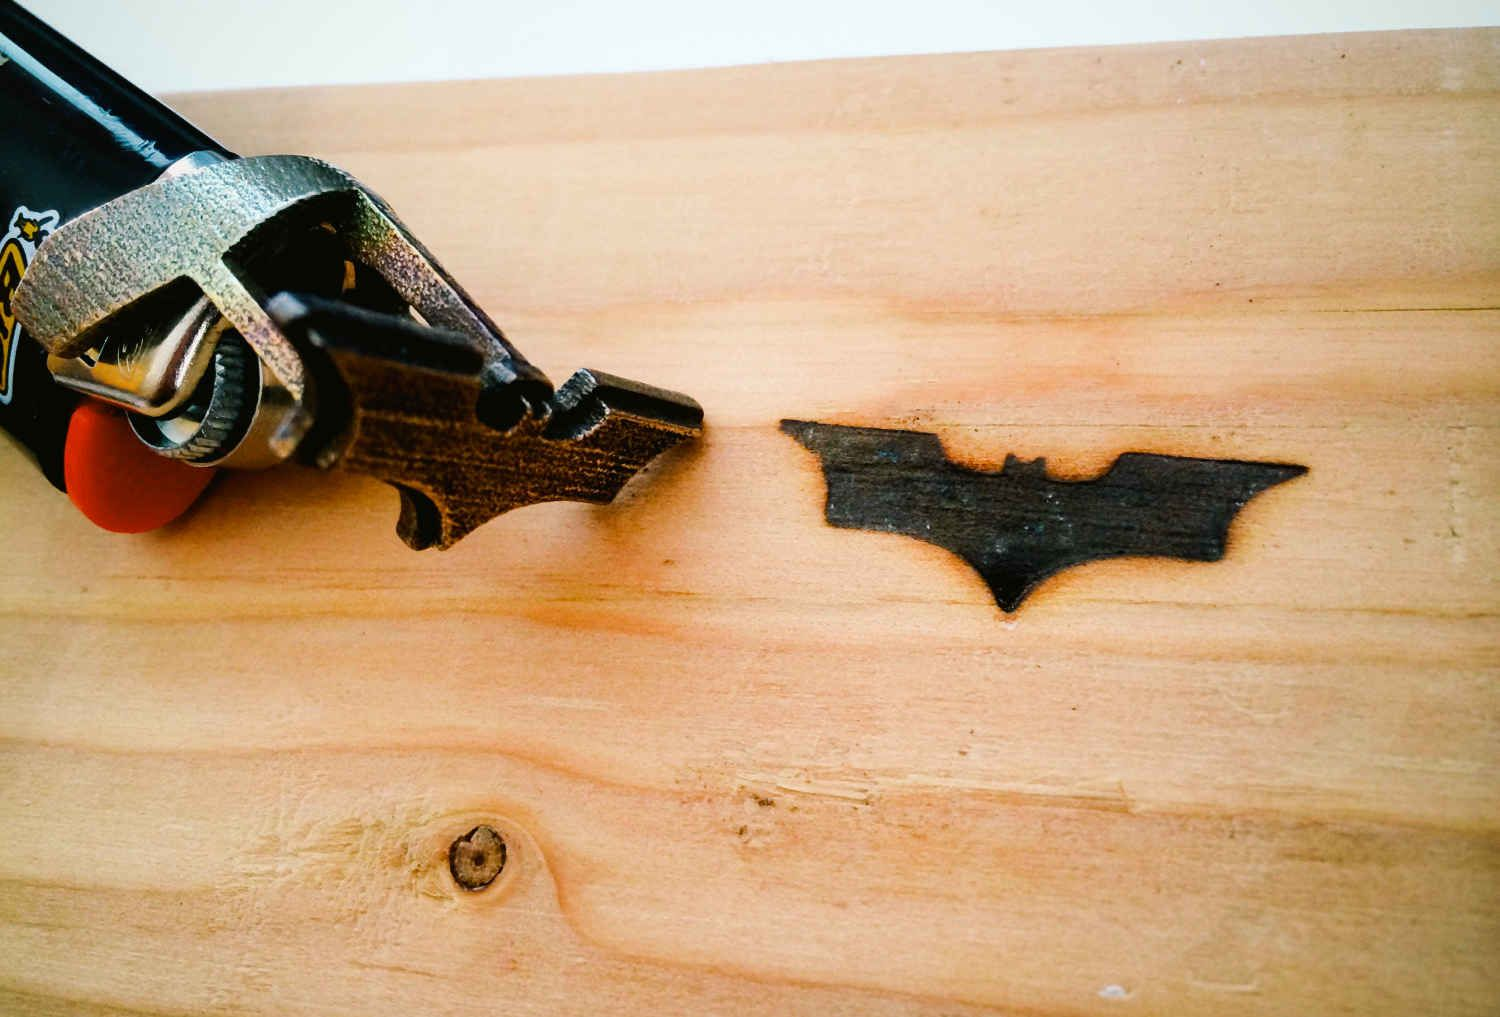 Brand The Batman Logo On Everything With This Lighter - Supercompressor.com